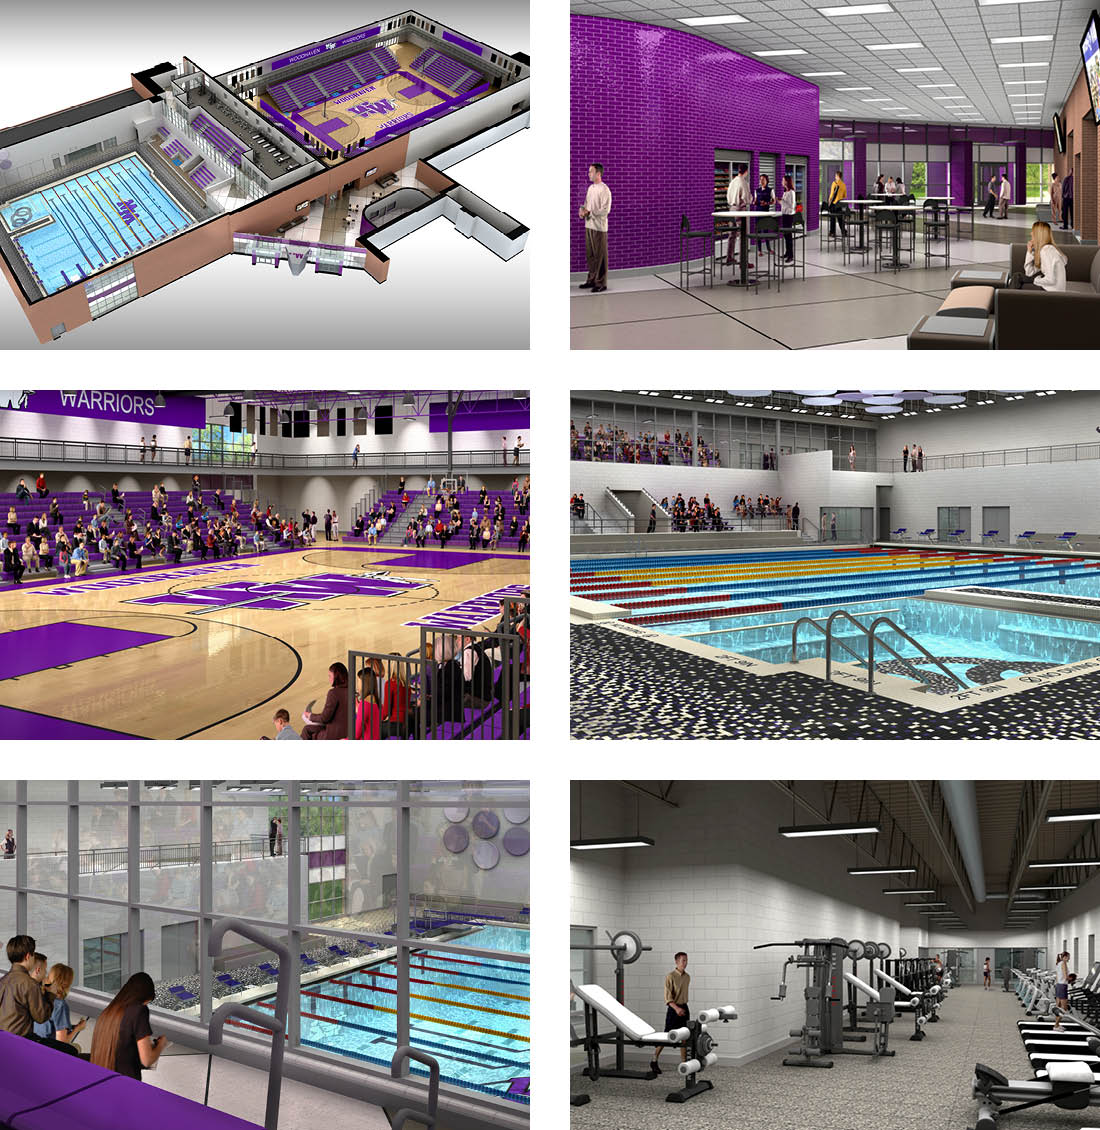 Woodhaven High School, part of Woodhaven-Brownstown School District, renderings for athletic center and pool